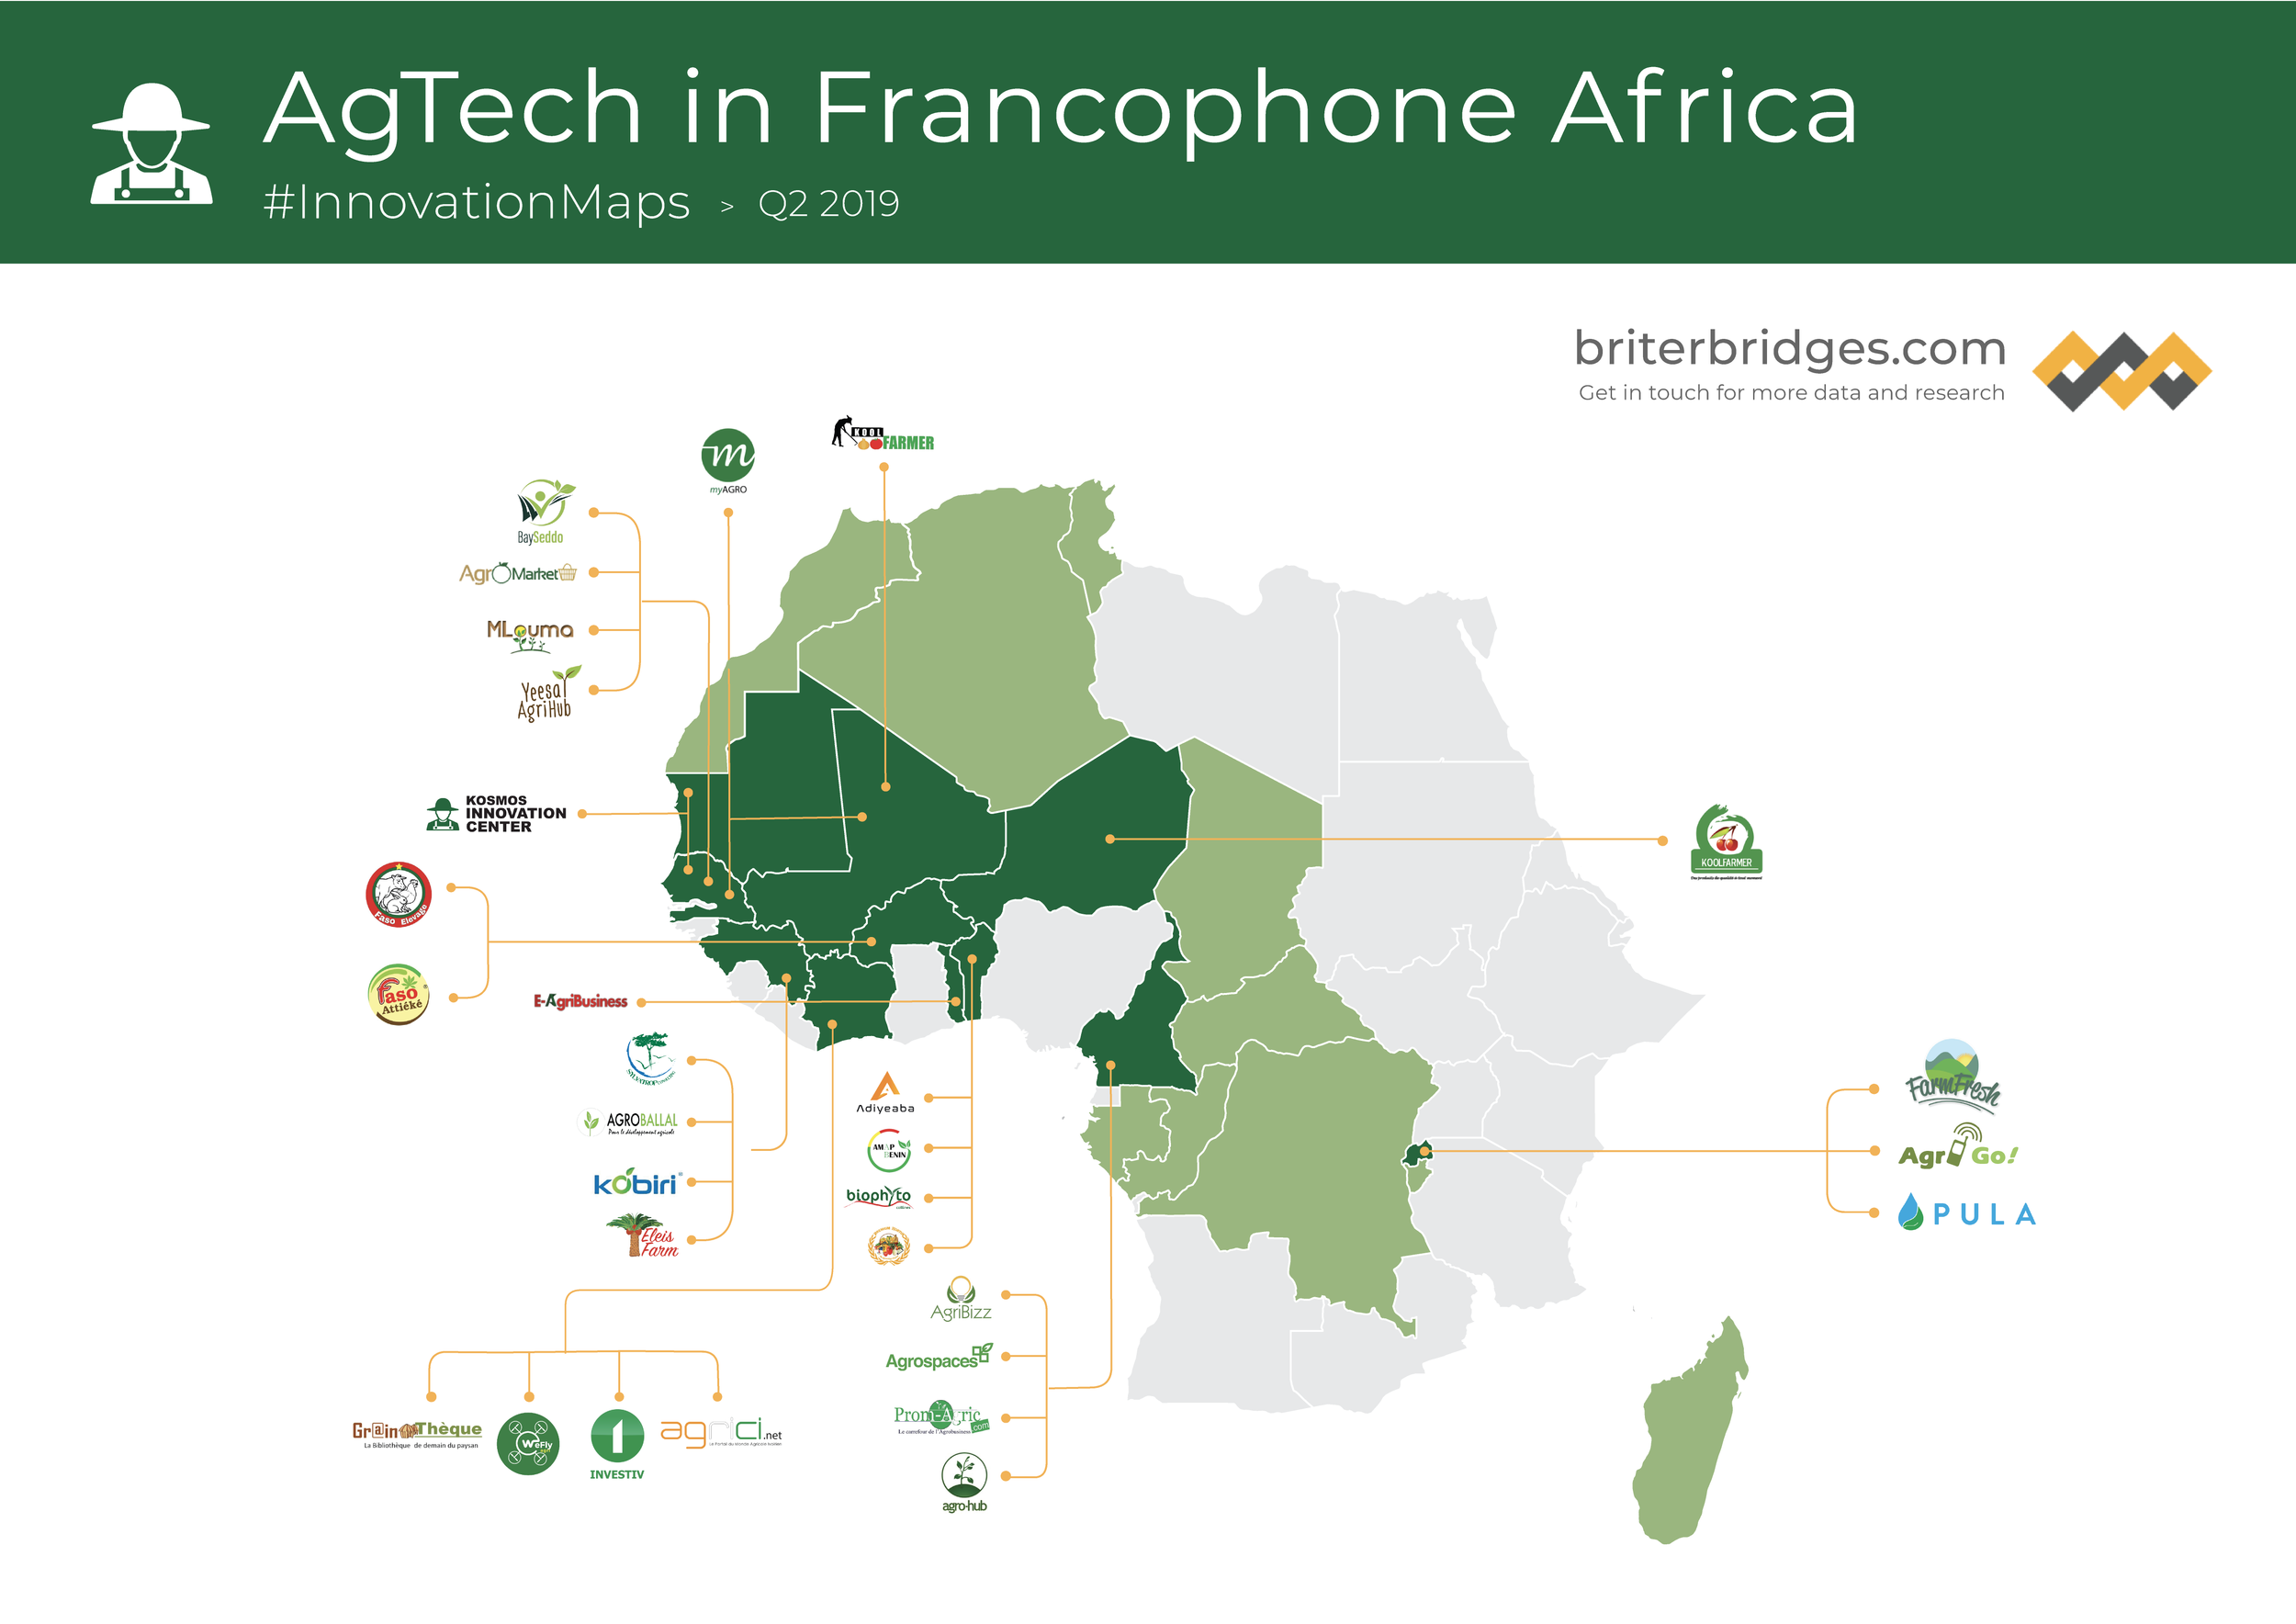 AgTech in Francophone Africa